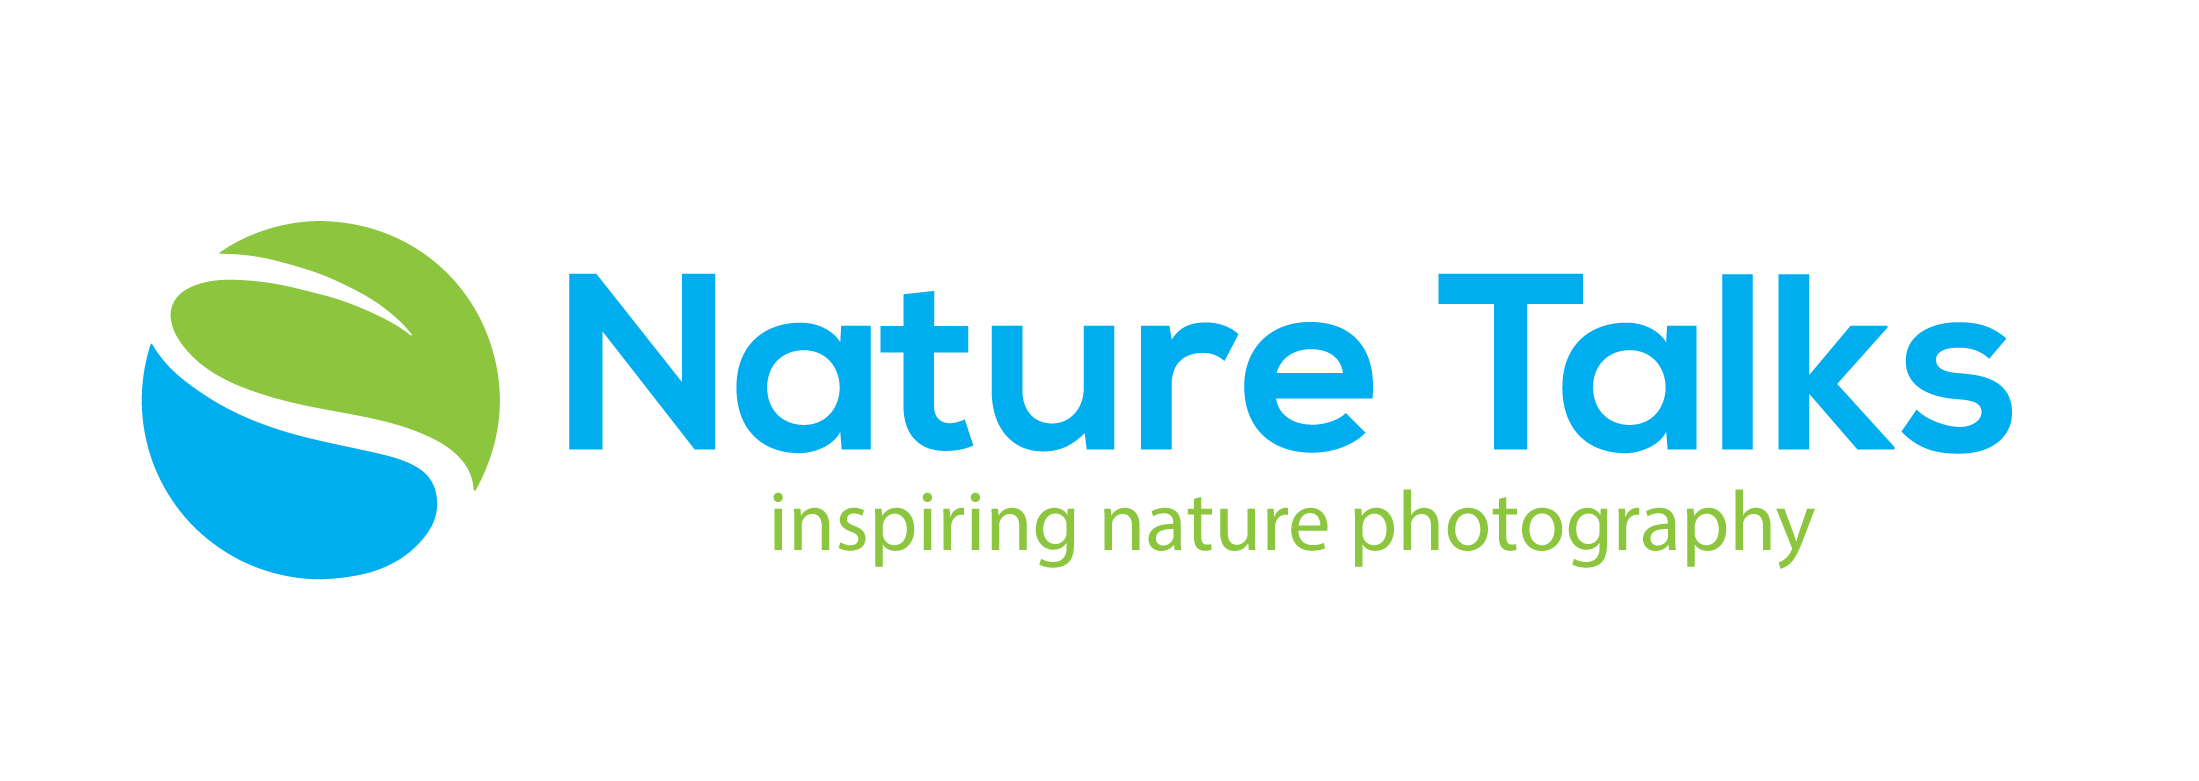 naturetalks_laag